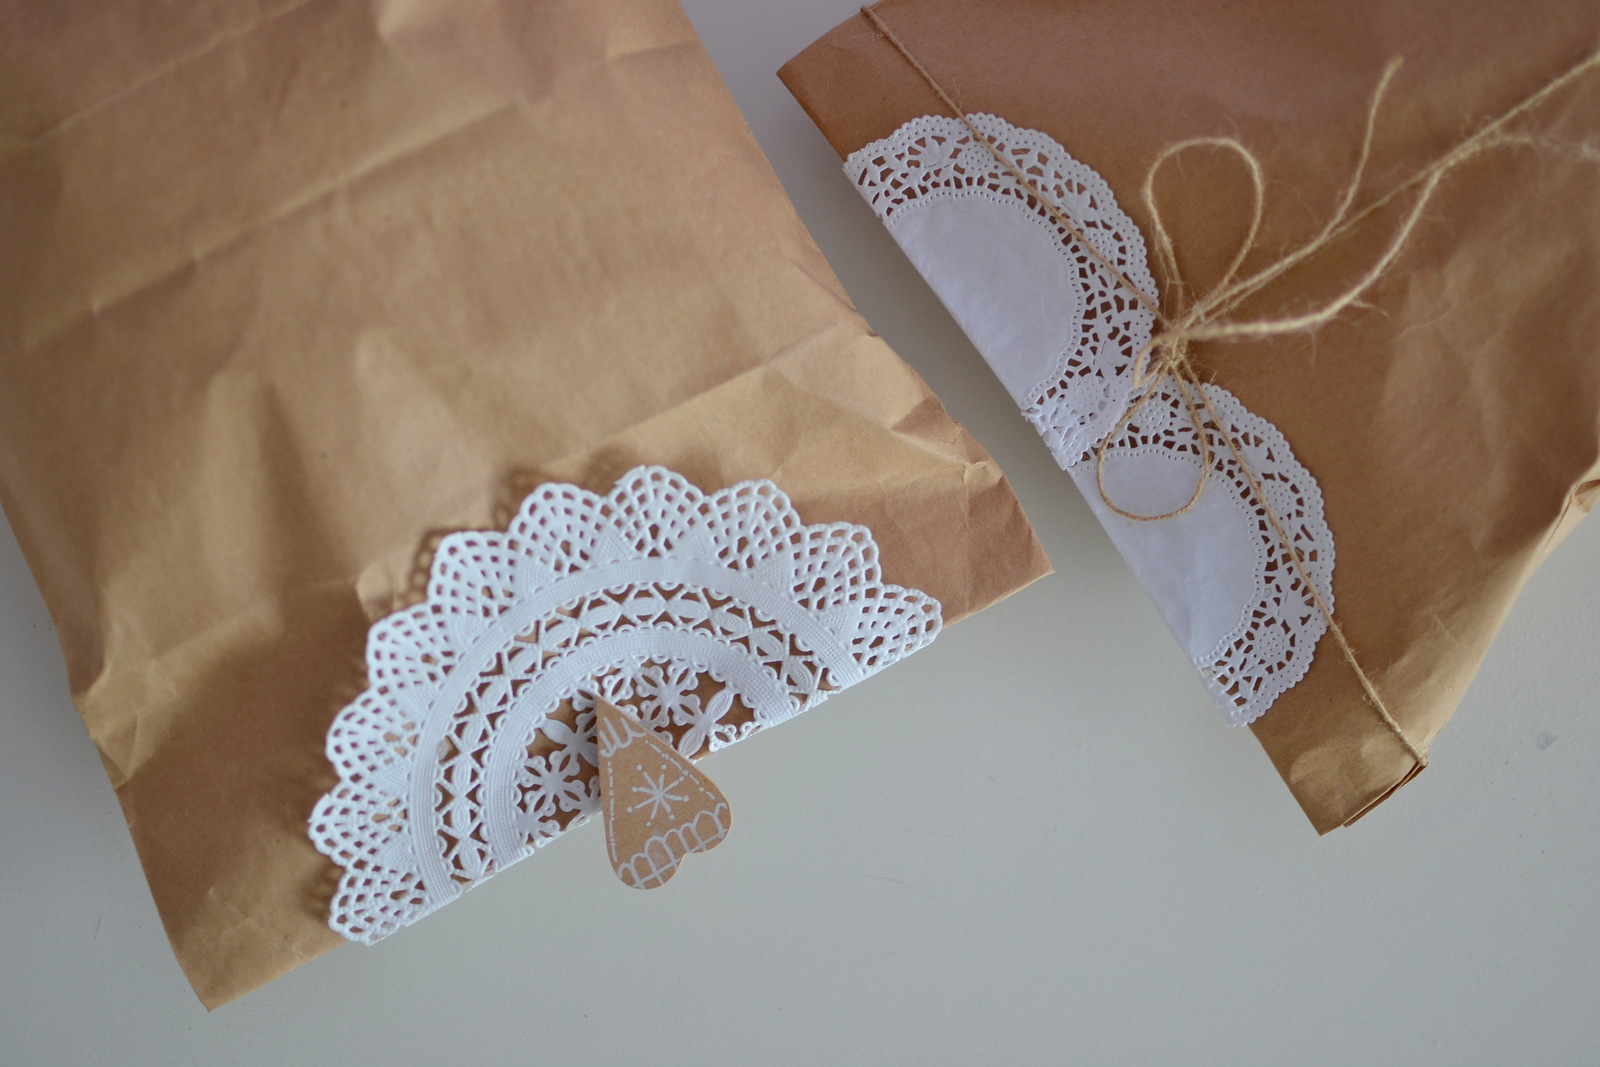 DIY: gift wrap // brown bags and paper doilies